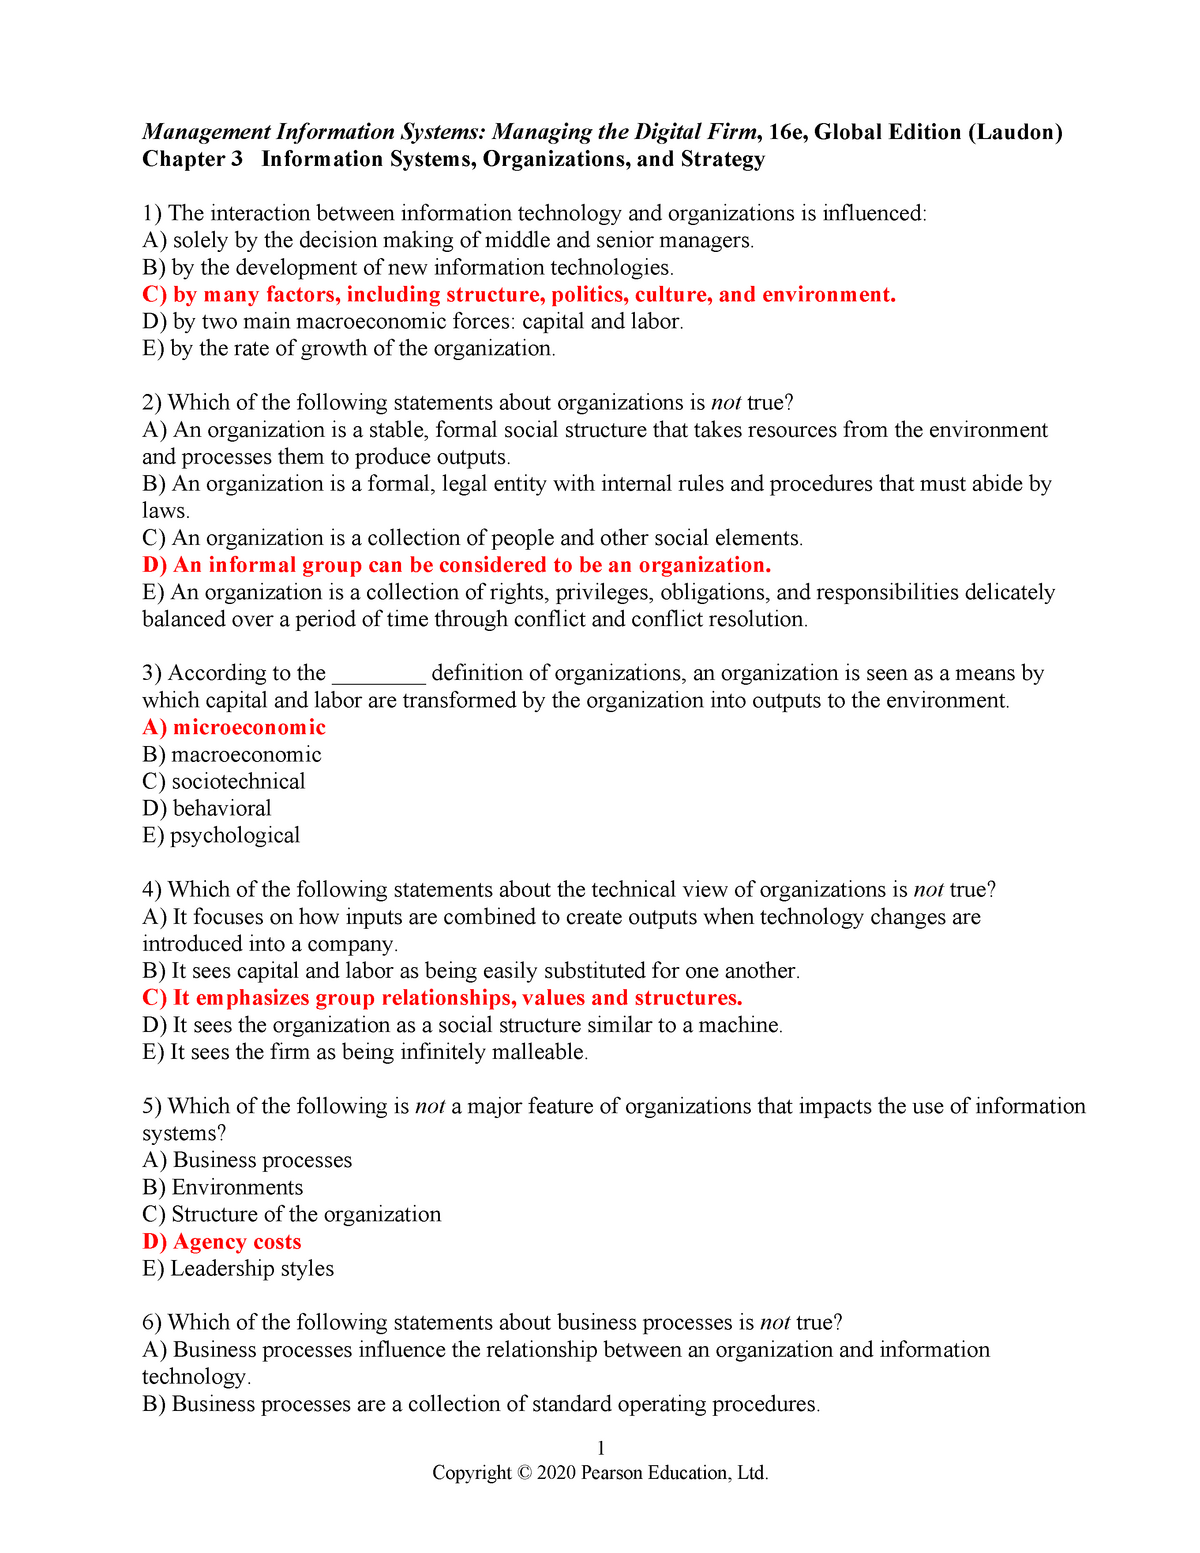 Chapter 3 Questions Test Bank Used By Dr Ashley Opm 2 Studocu